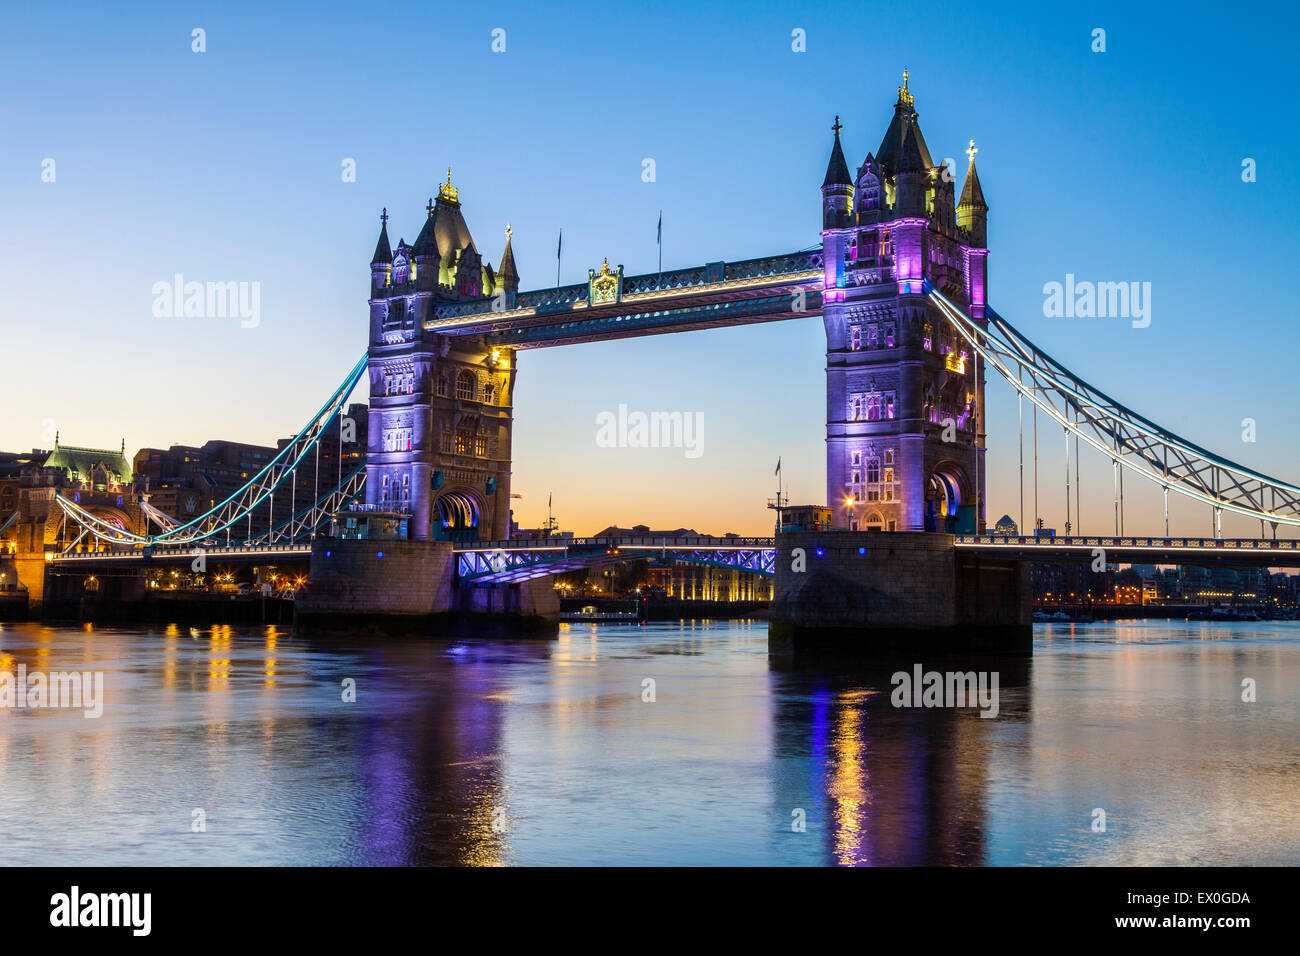 The magnificent Tower Bridge at dawn in London. - Stock Image